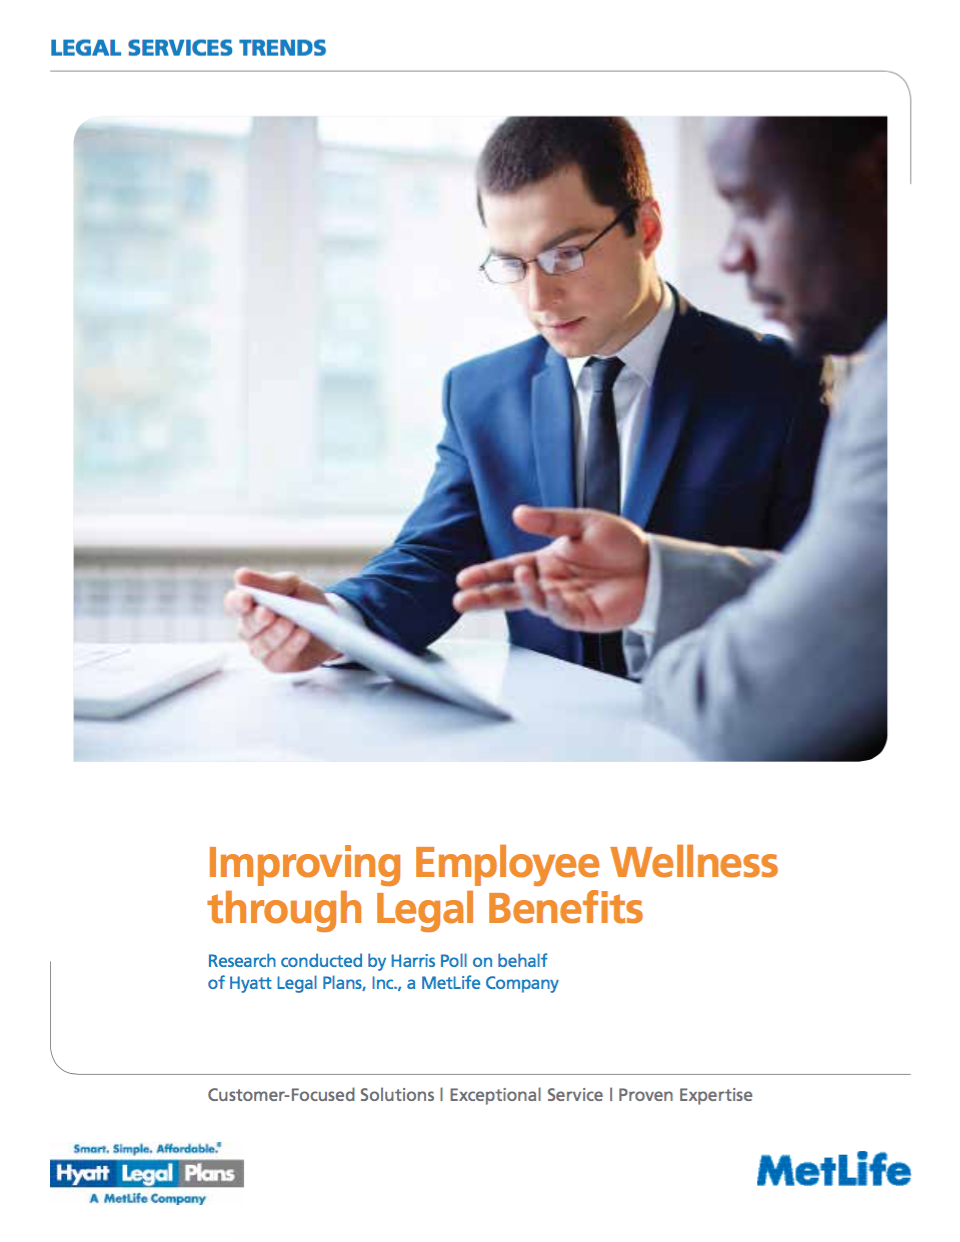 Improving Employee Wellness through Legal Benefits